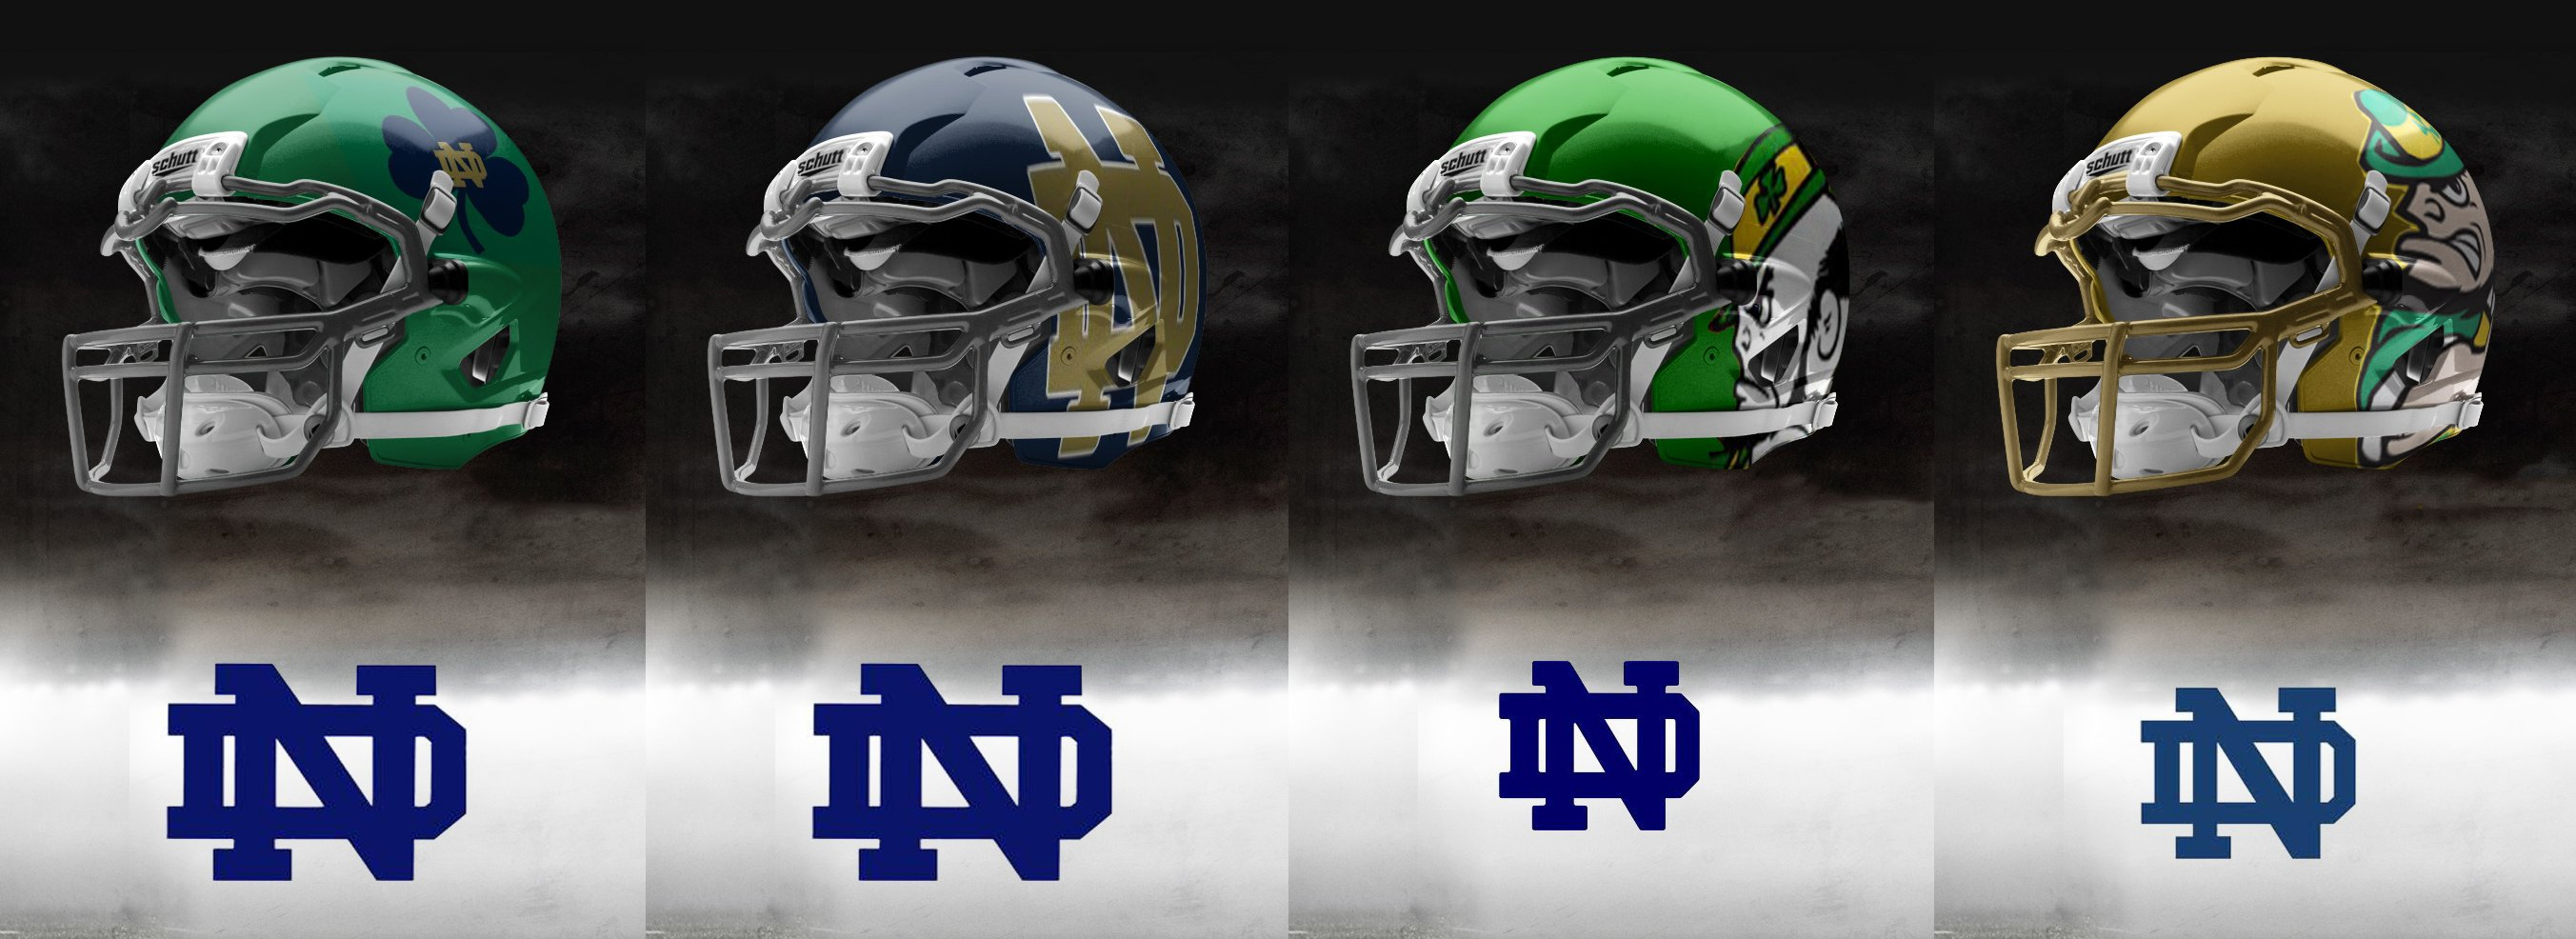 Notre dame fighting irish college football wallpaper - Notre dame football wallpaper ...